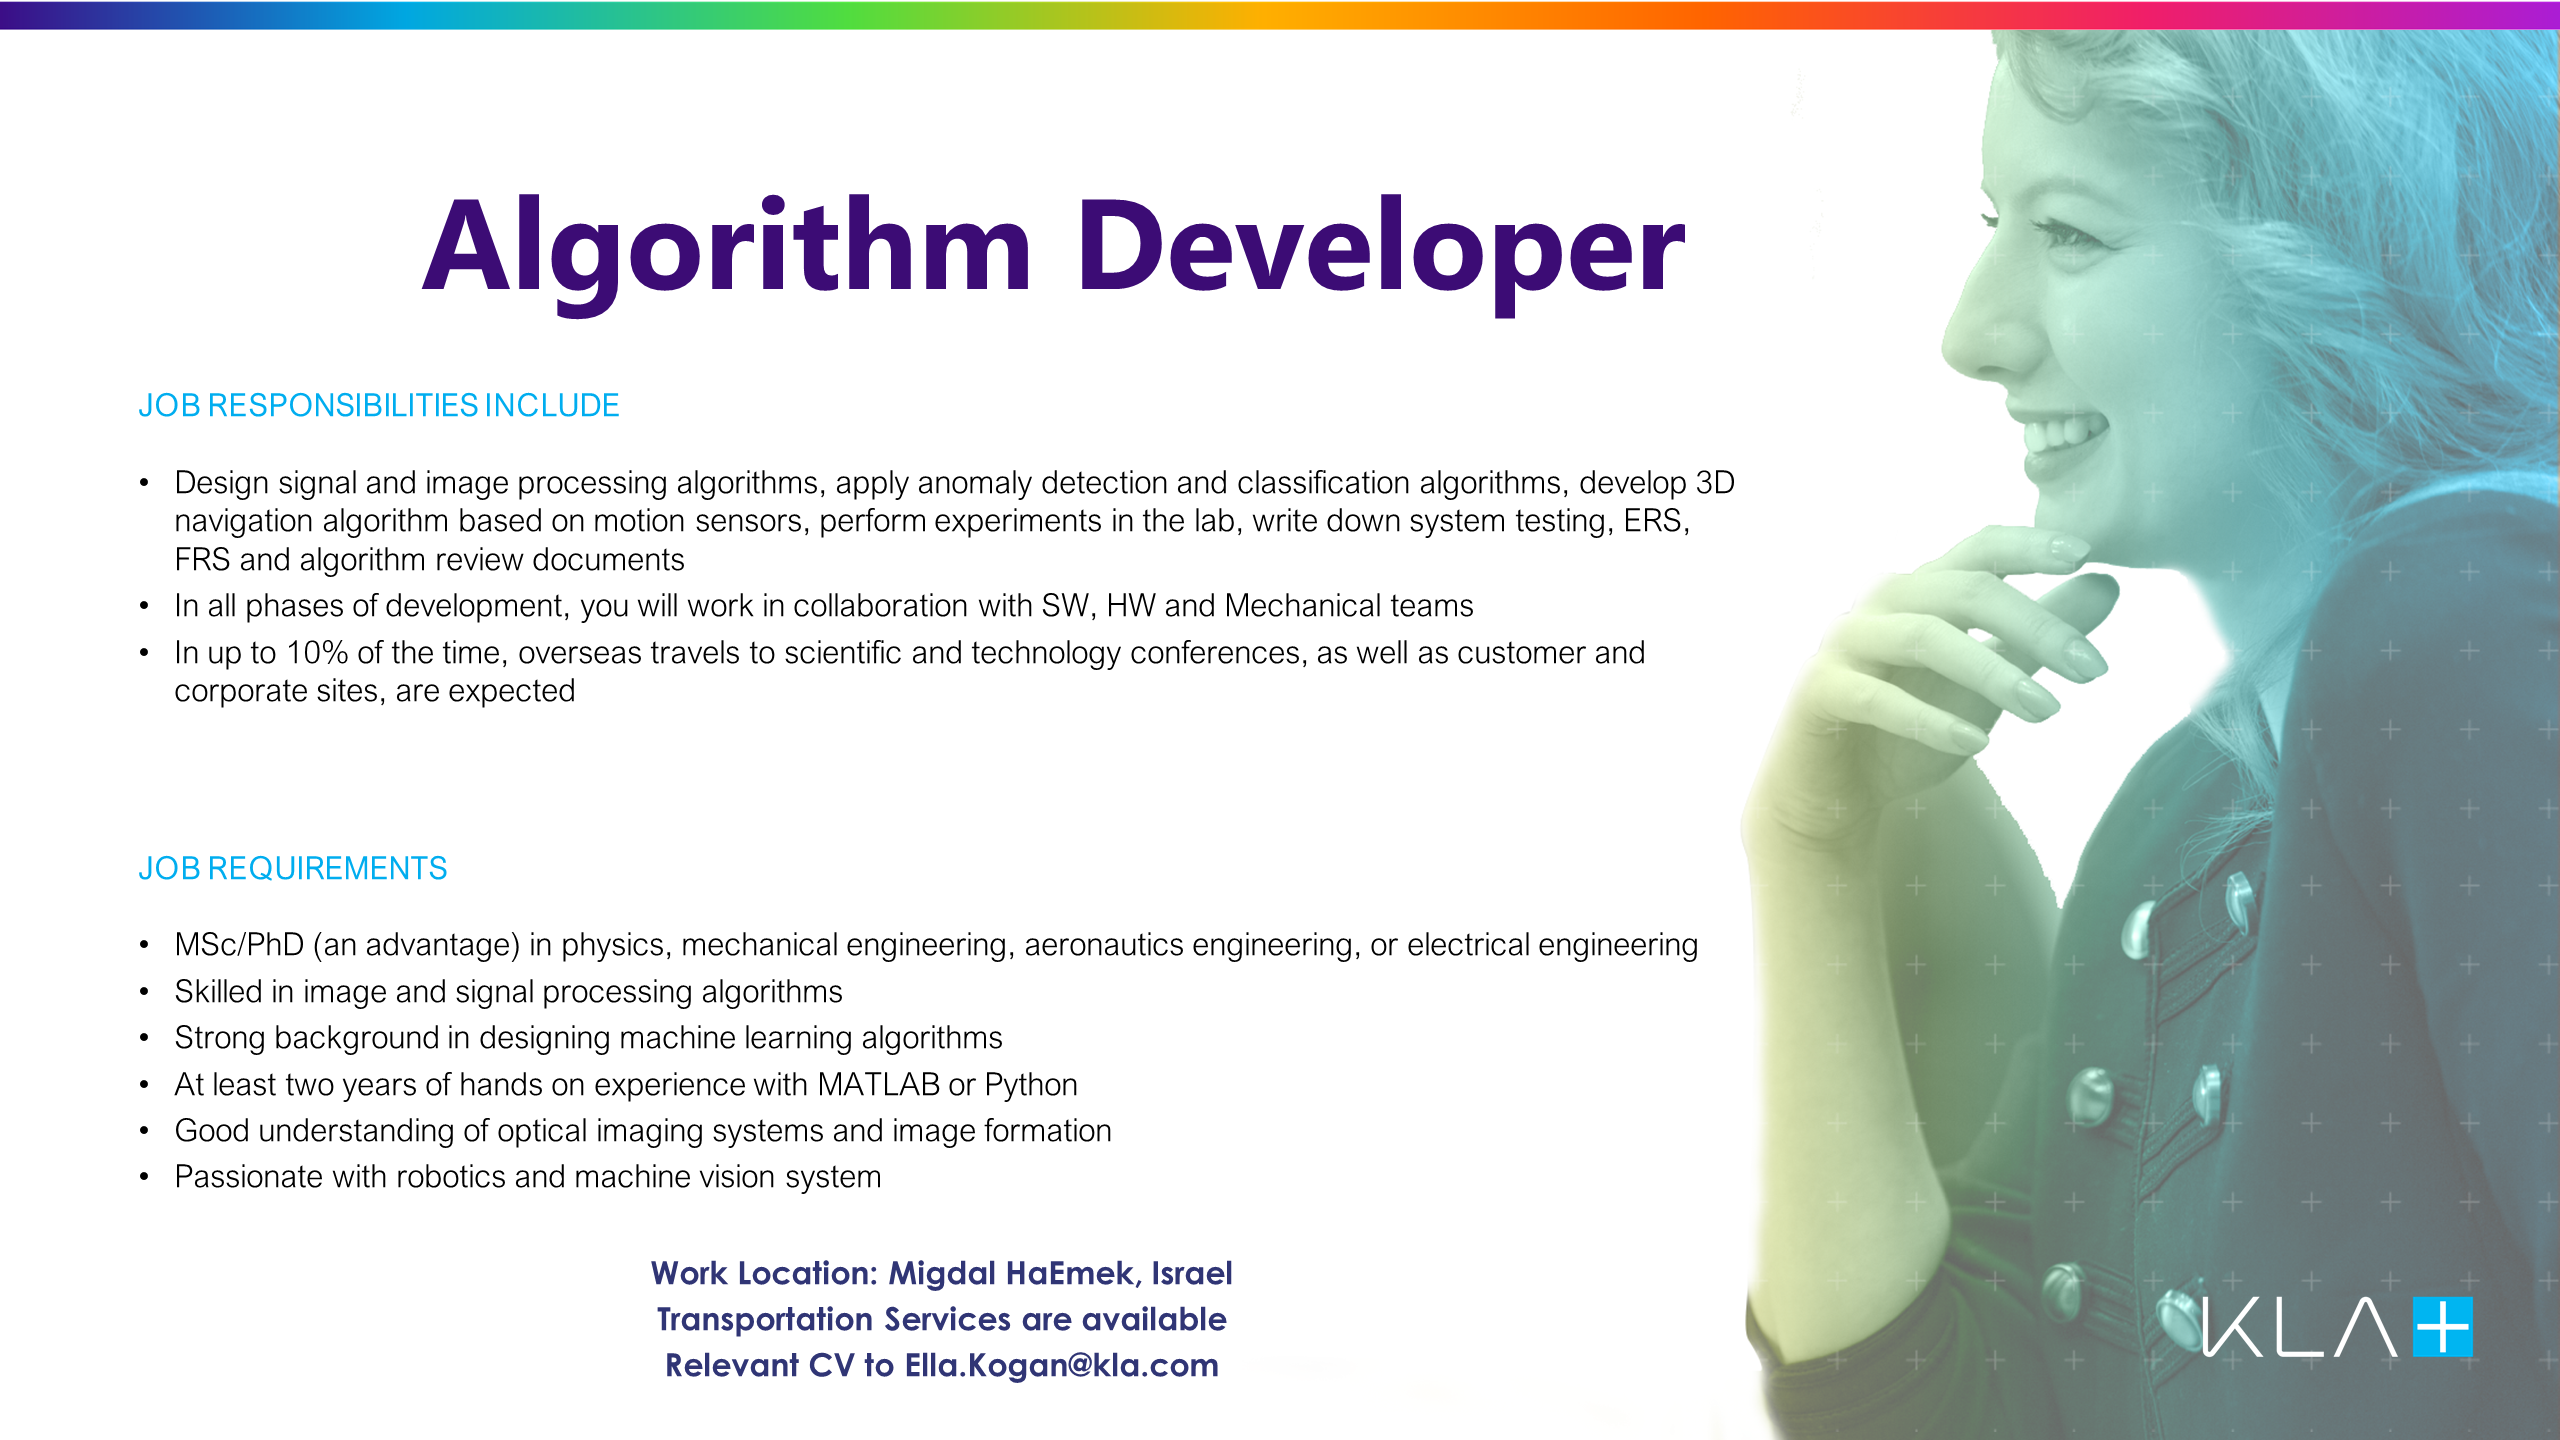 Algorithm Developer KLA job offer